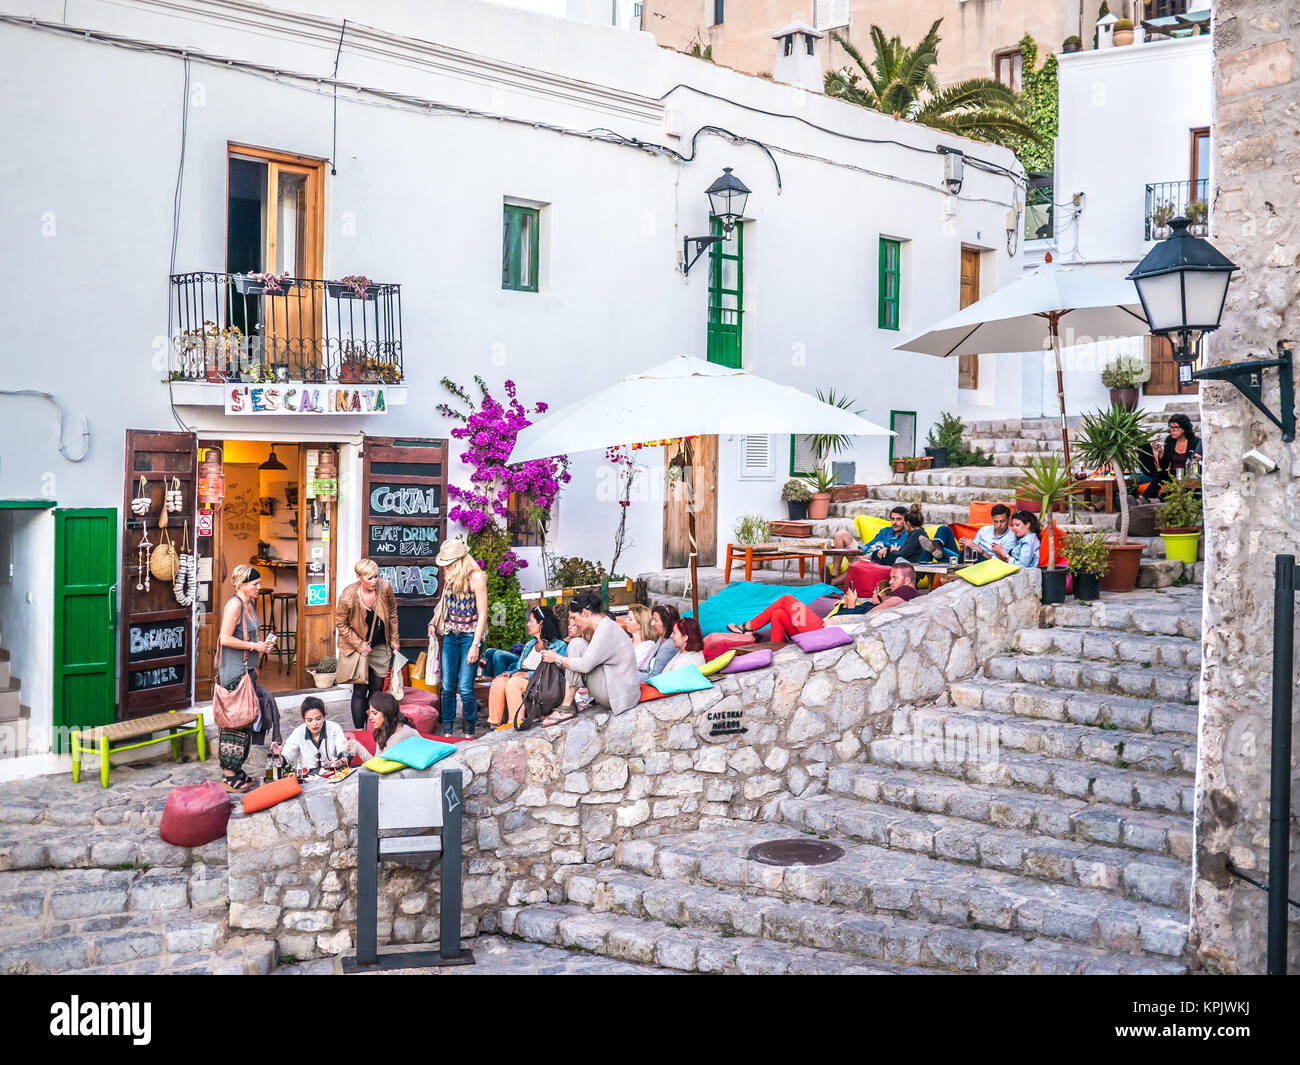 IBIZA, SPAIN - MAY 23, 2015. The Ibiza culture means to enjoy the life in the clubs and bars. Stock Photo